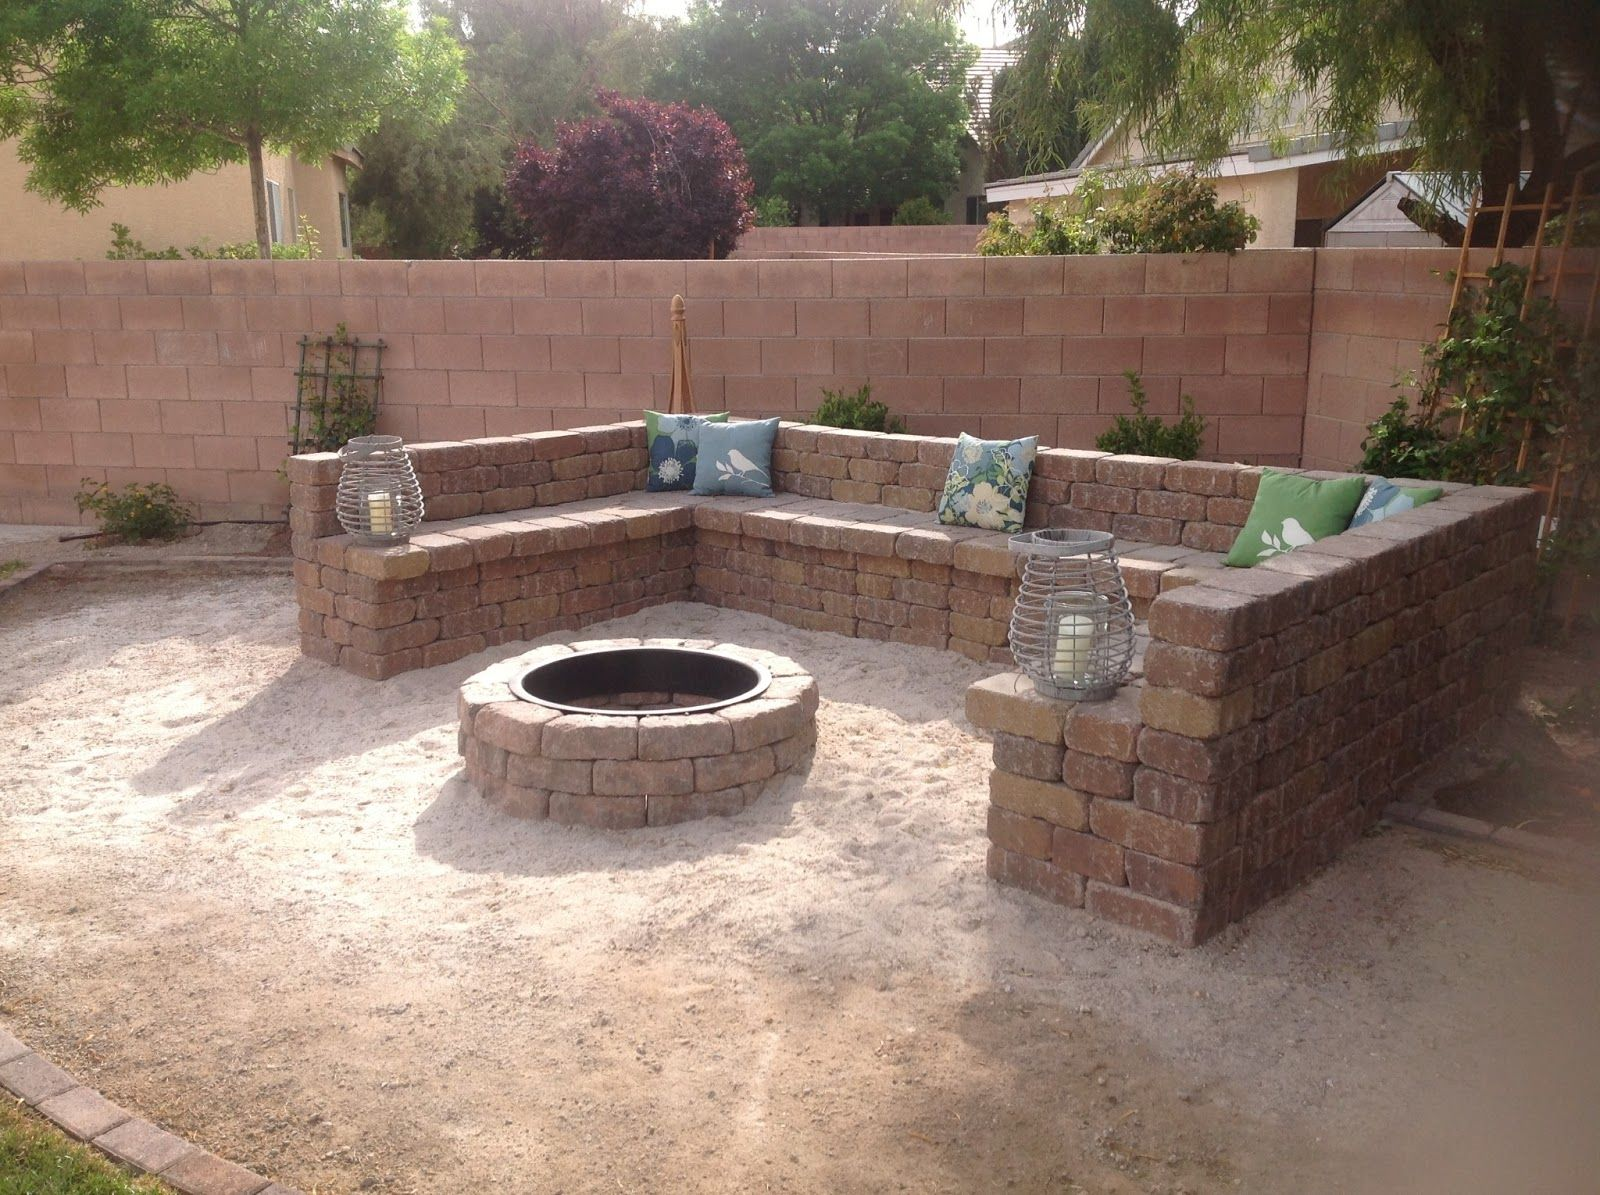 Blog about being happy recognizing joy dealing with anxiety and 14 diy fire pits you can make yourself 14 diy fire pits you can make yourself fire pits come in many shapes and sizes they can be a permanent structure solutioingenieria Image collections